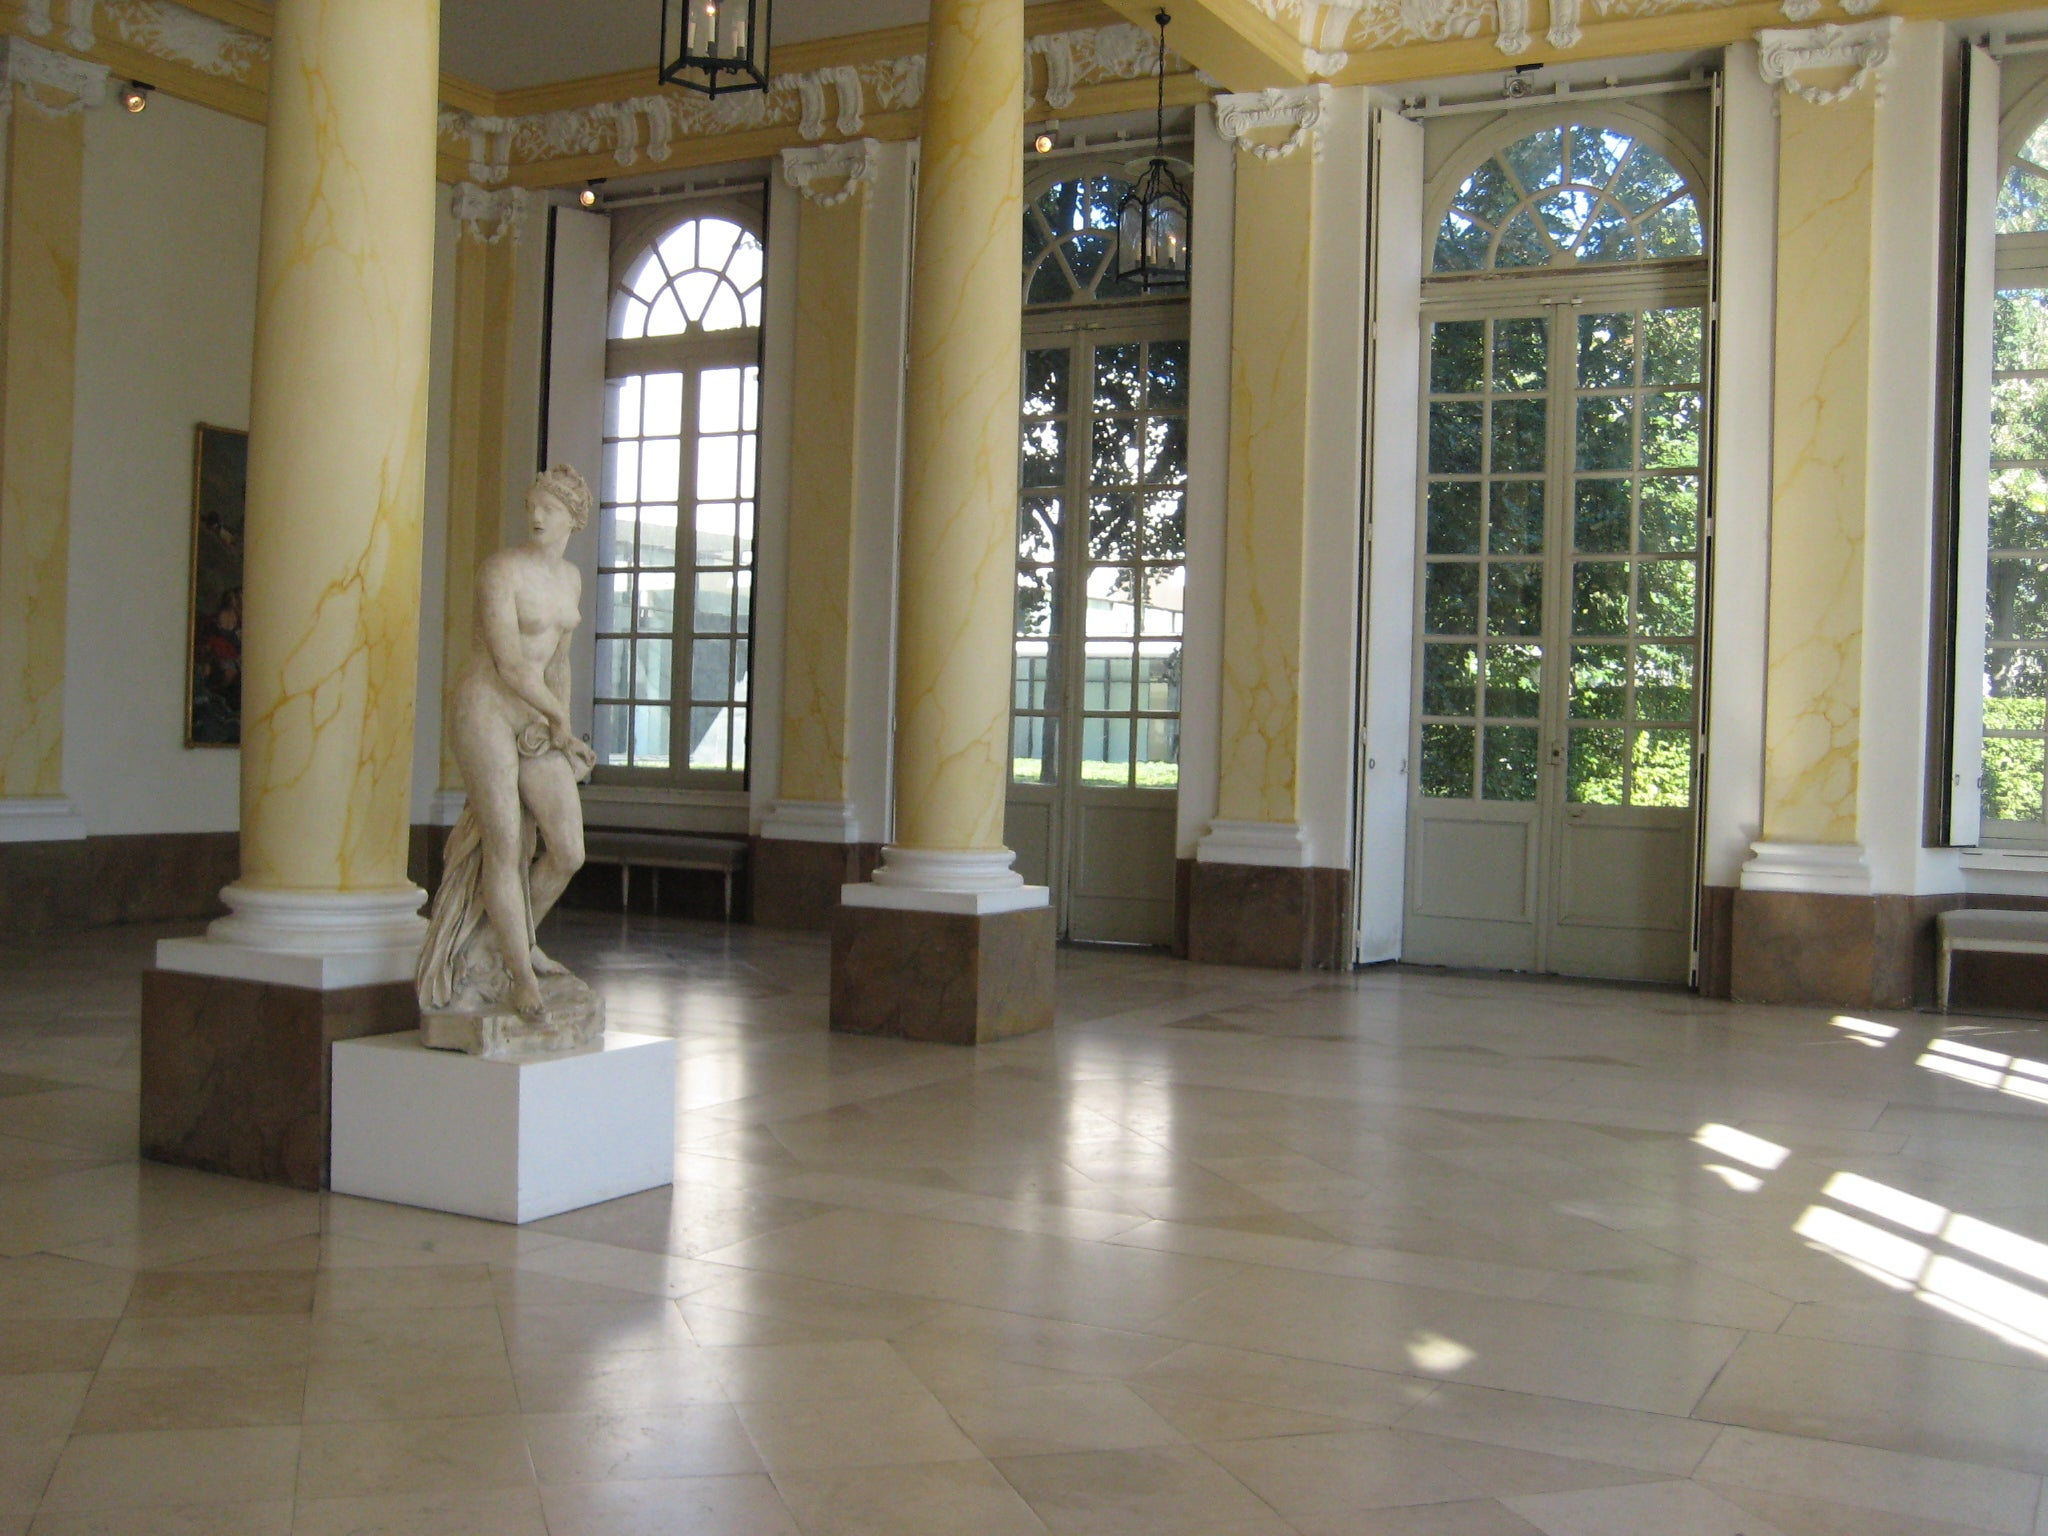 Sala en Museo de Bellas Artes de Nancy